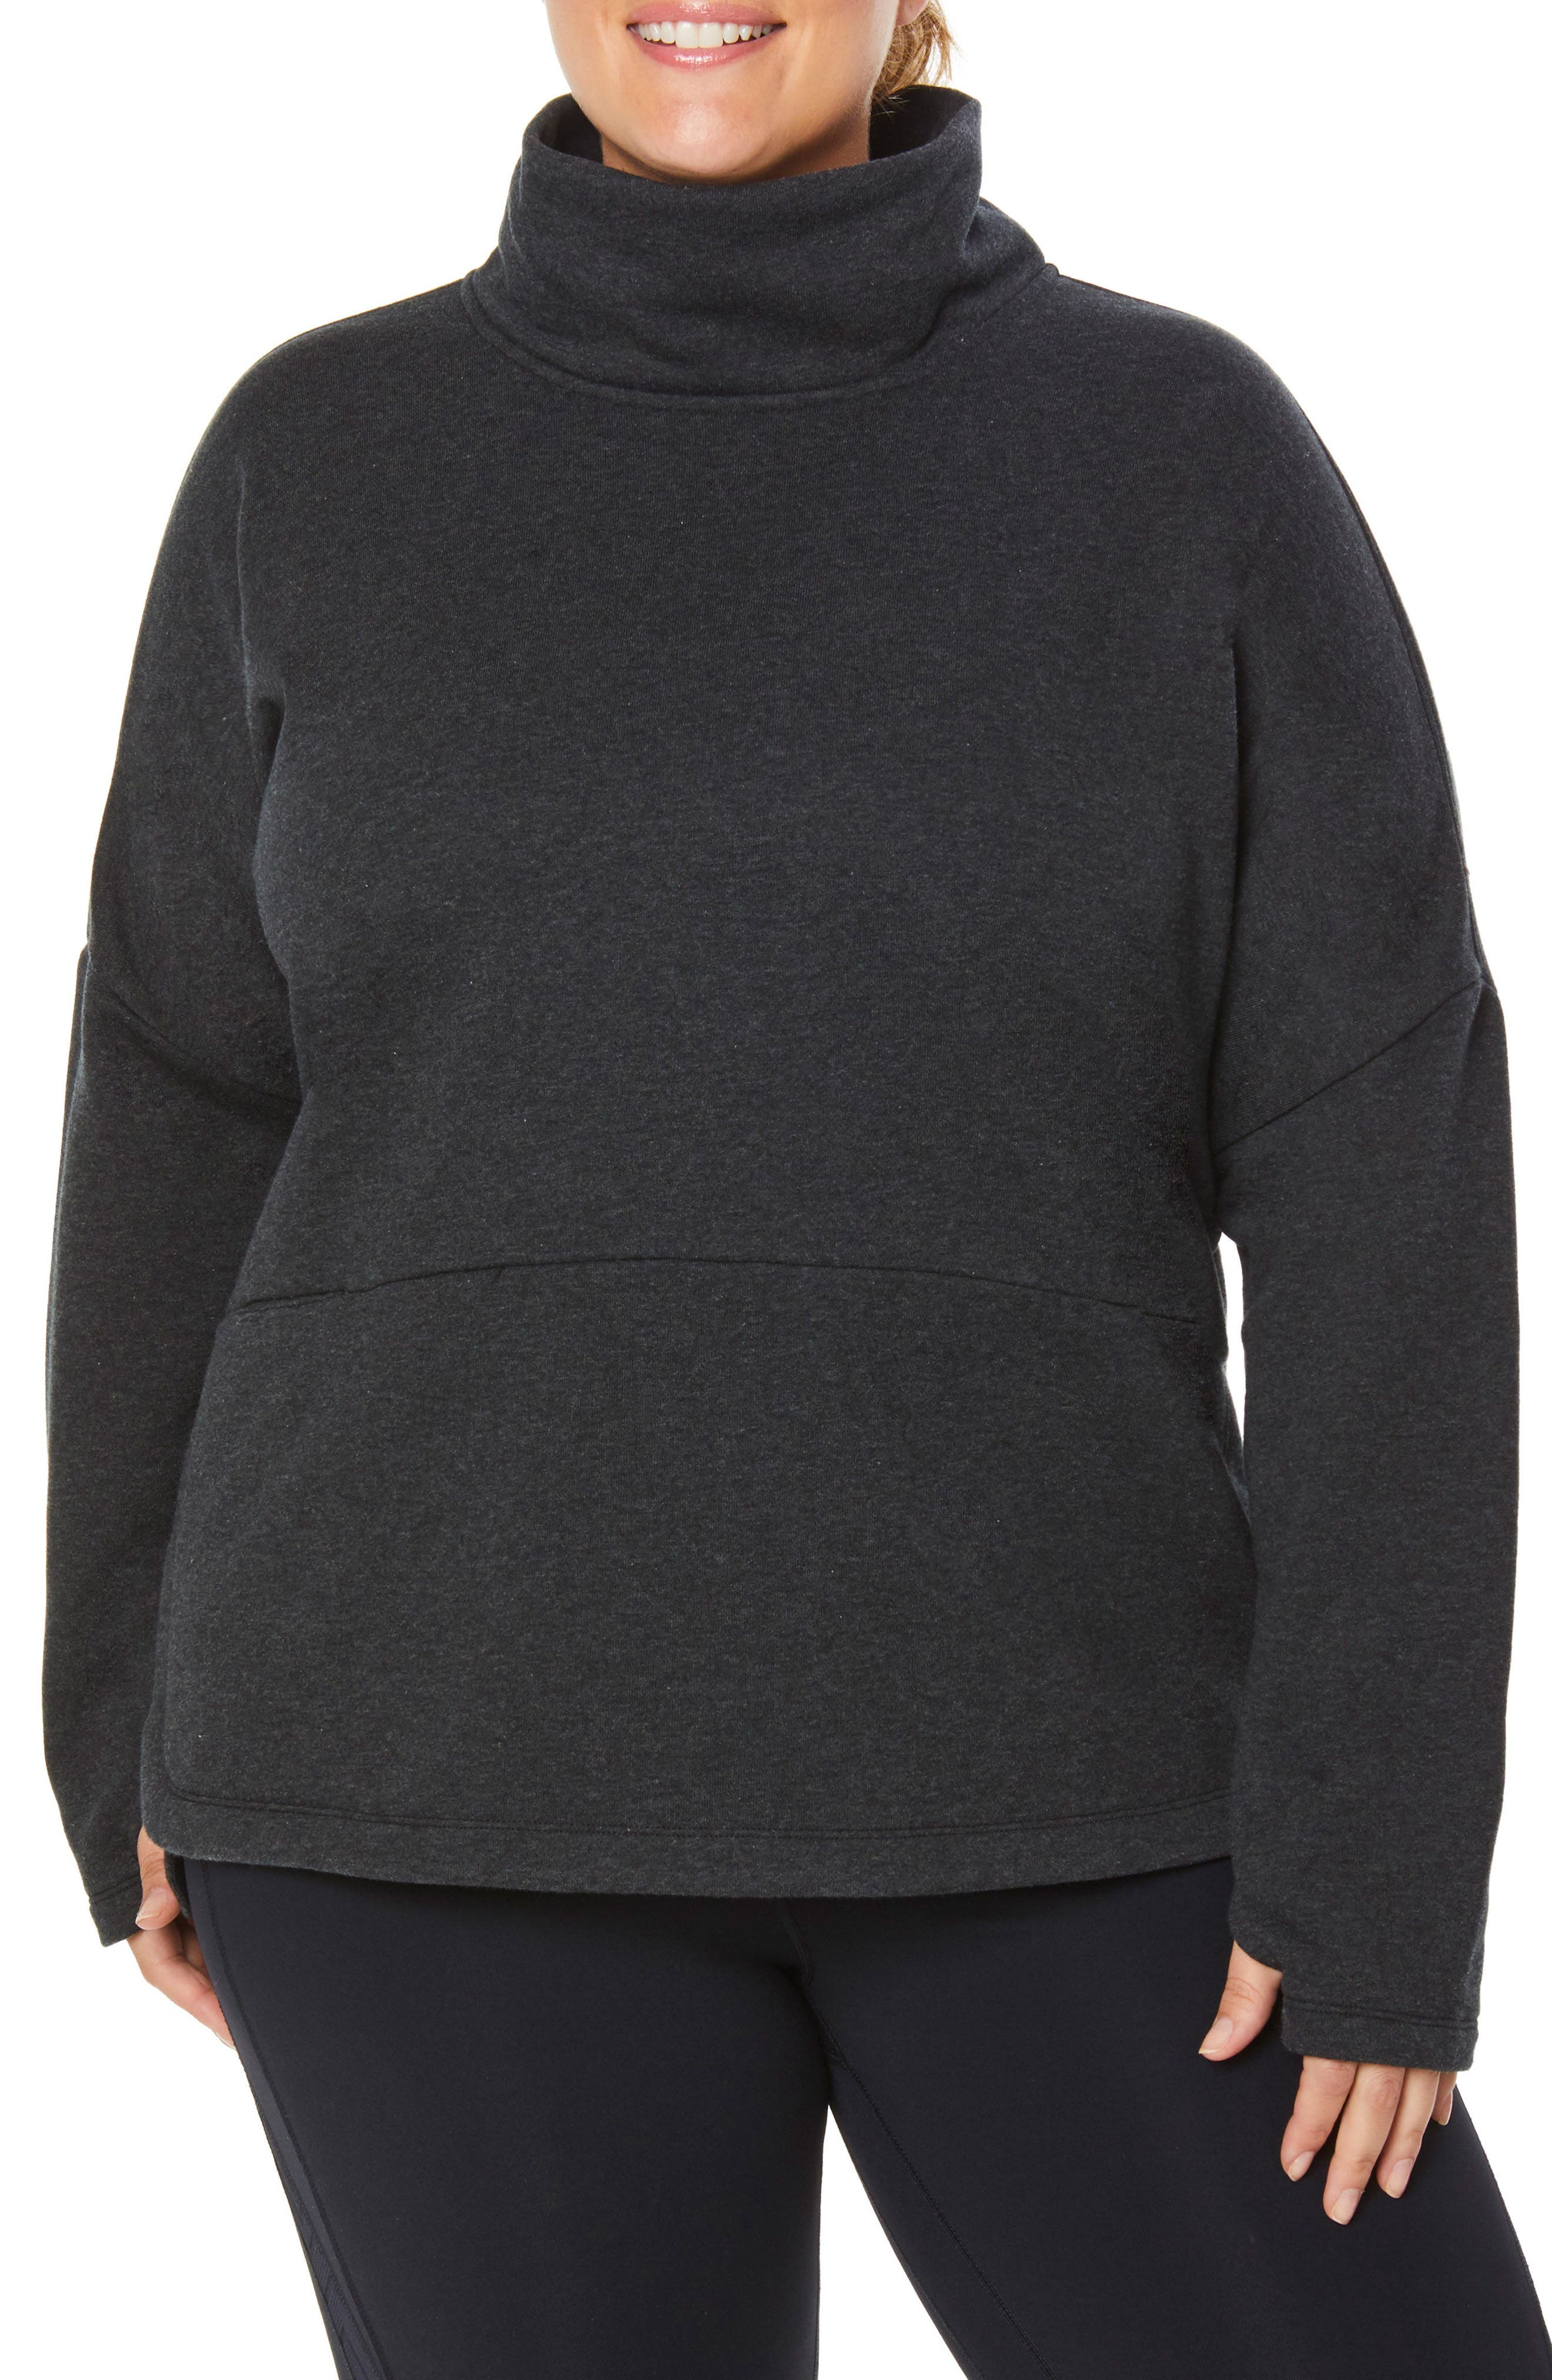 Mock Neck Pullover,                             Main thumbnail 1, color,                             CHARCOAL BLACK